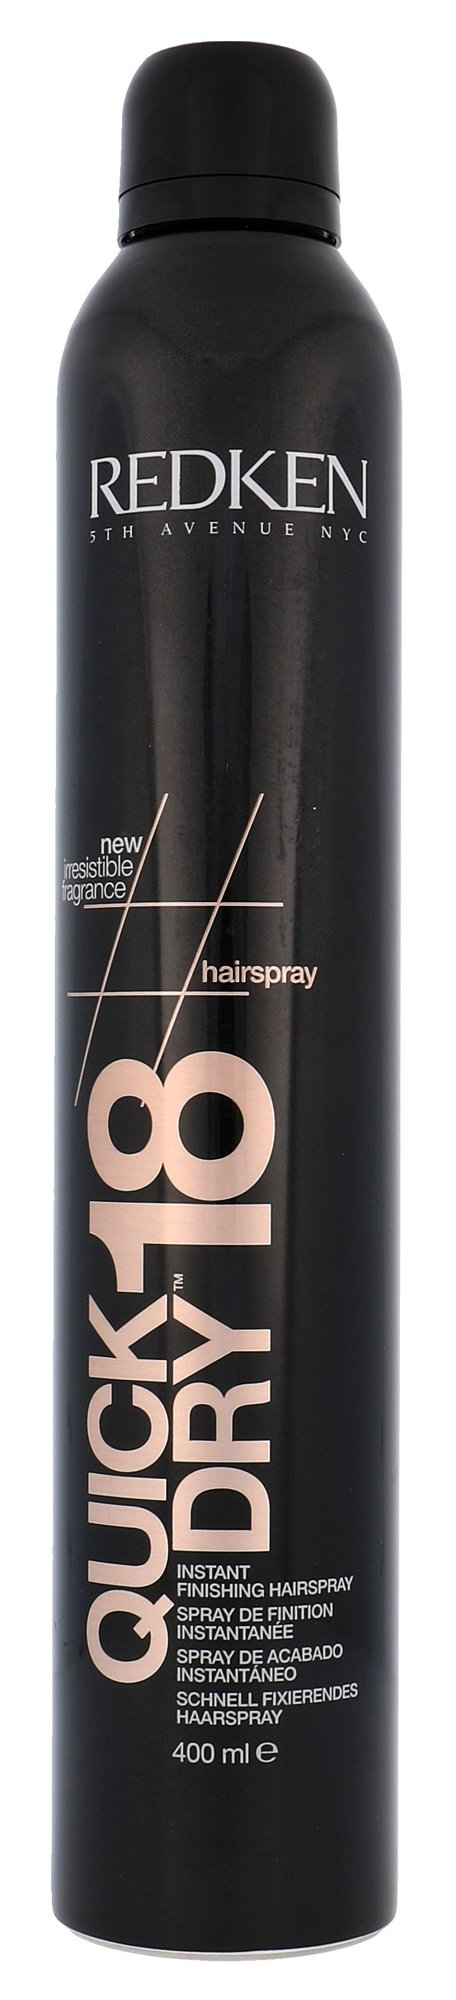 Redken Quick Dry 18 Hairprays Cosmetic 400ml